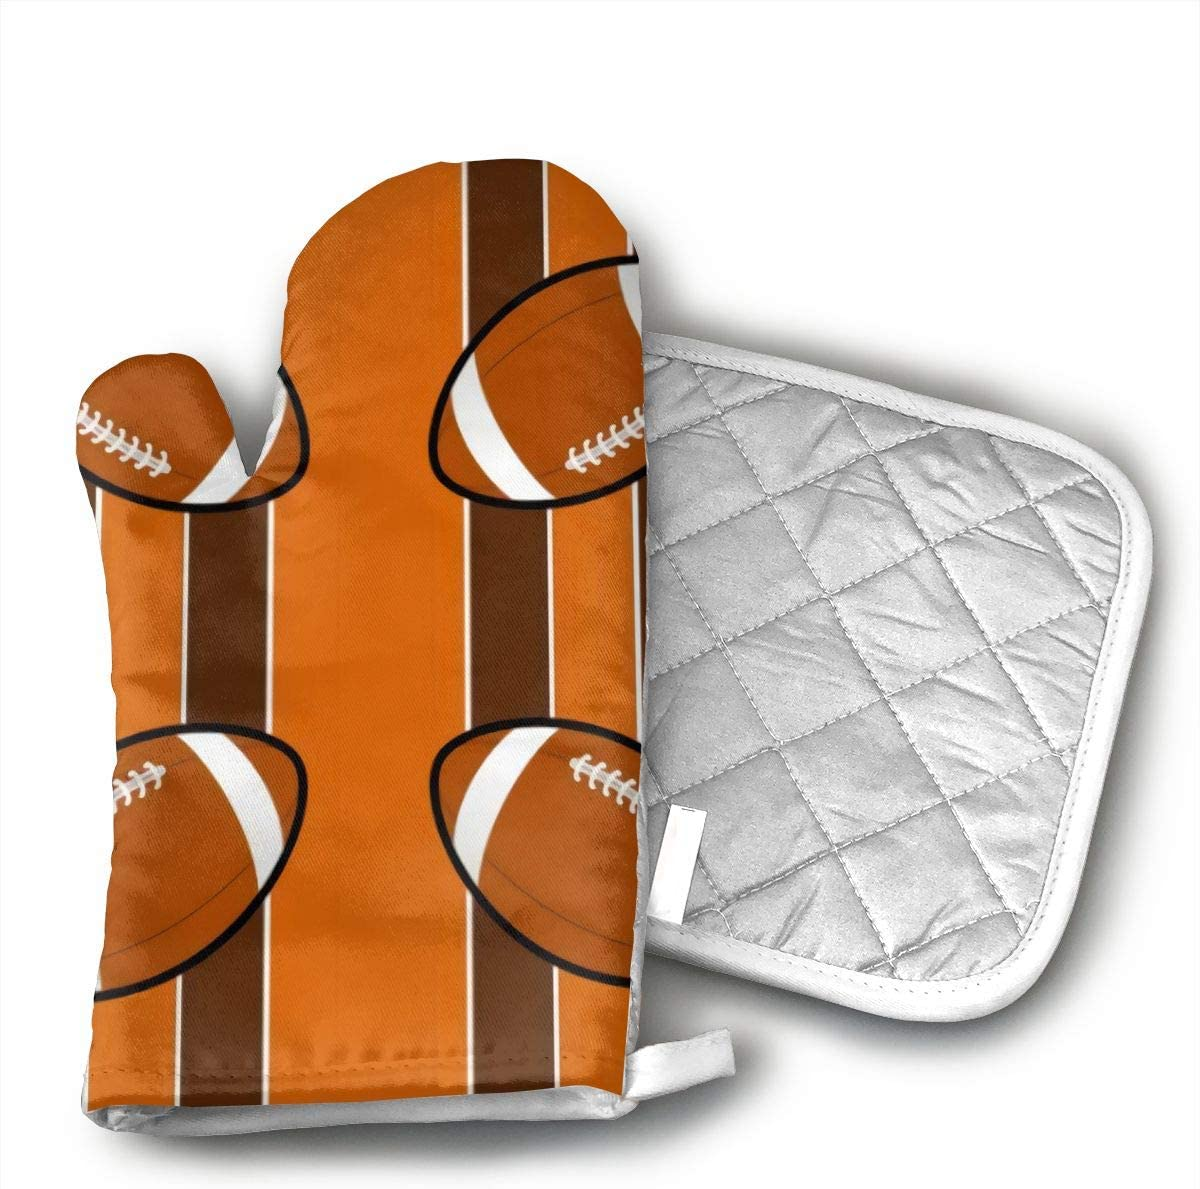 CHFSTi Oven Mitts Cleveland Browns Fabric Non-Slip Silicone Oven Mitts& Pot Holders, Heat Resistant to 500Fahrenheit Degrees Kitchen Oven Gloves